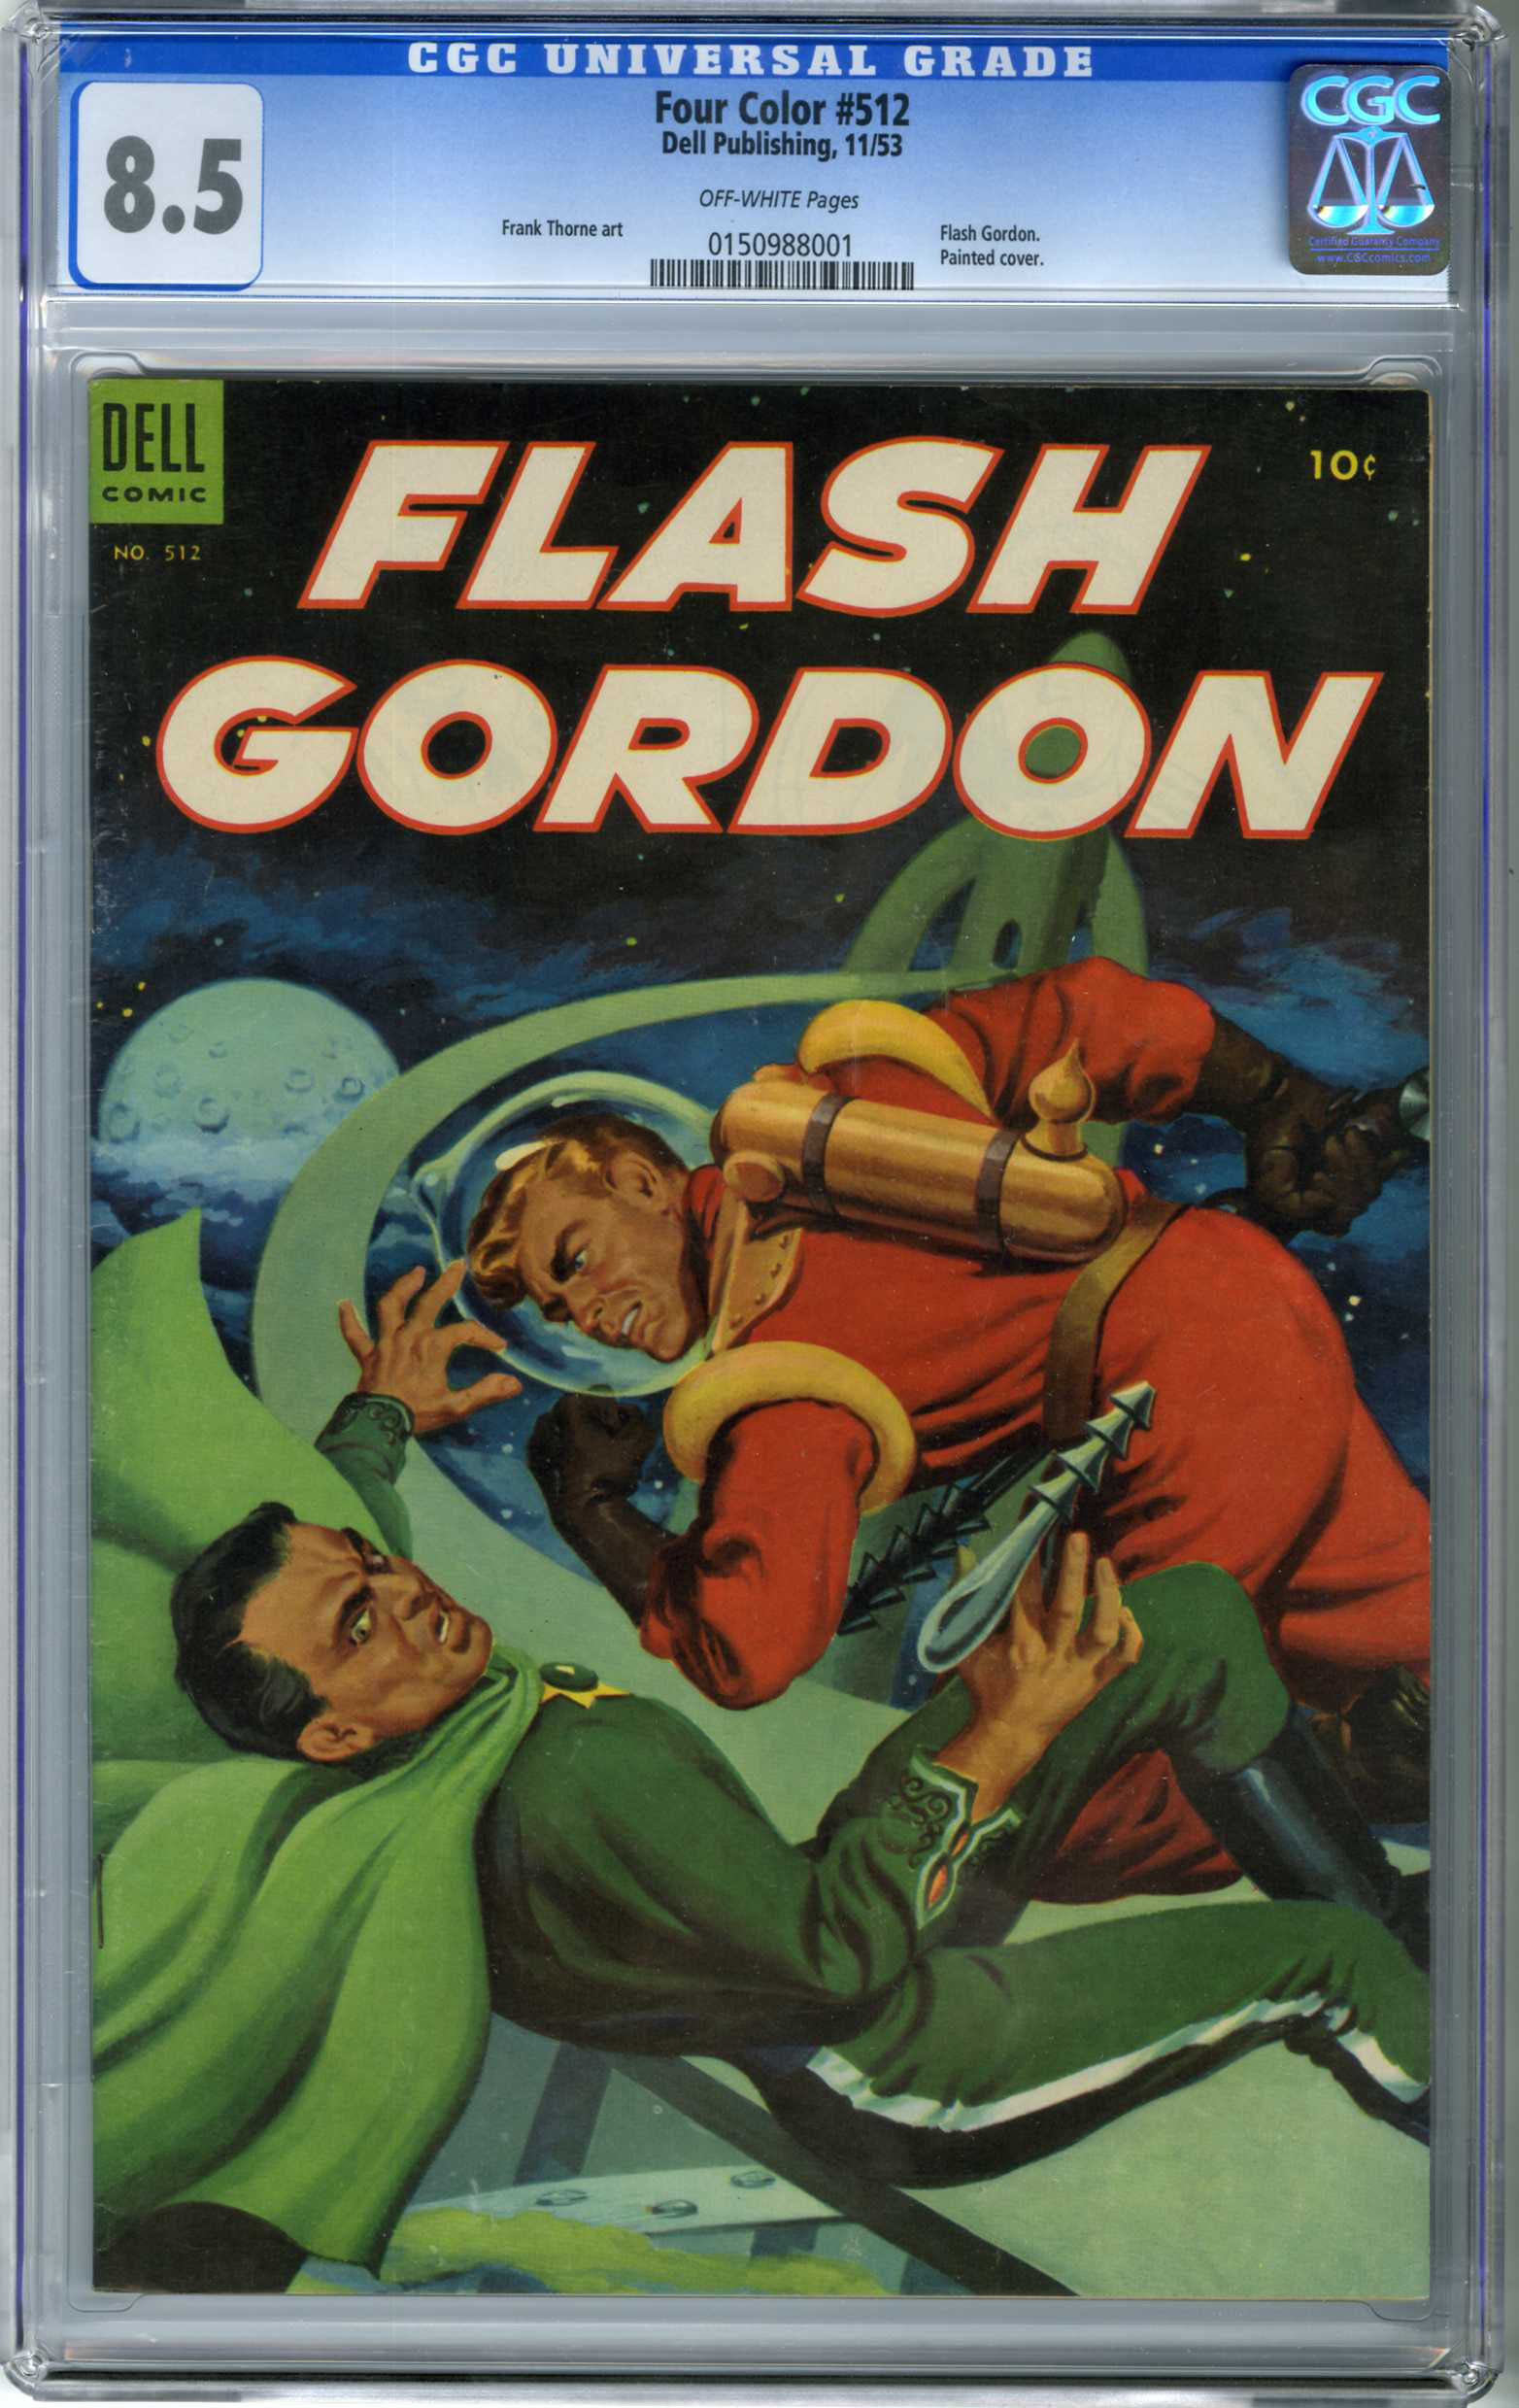 FOUR COLOR #512 FLASH GORDON (1953) CGC VF+ 8.5 OW Pages PAINTED CVR /THORNE ART